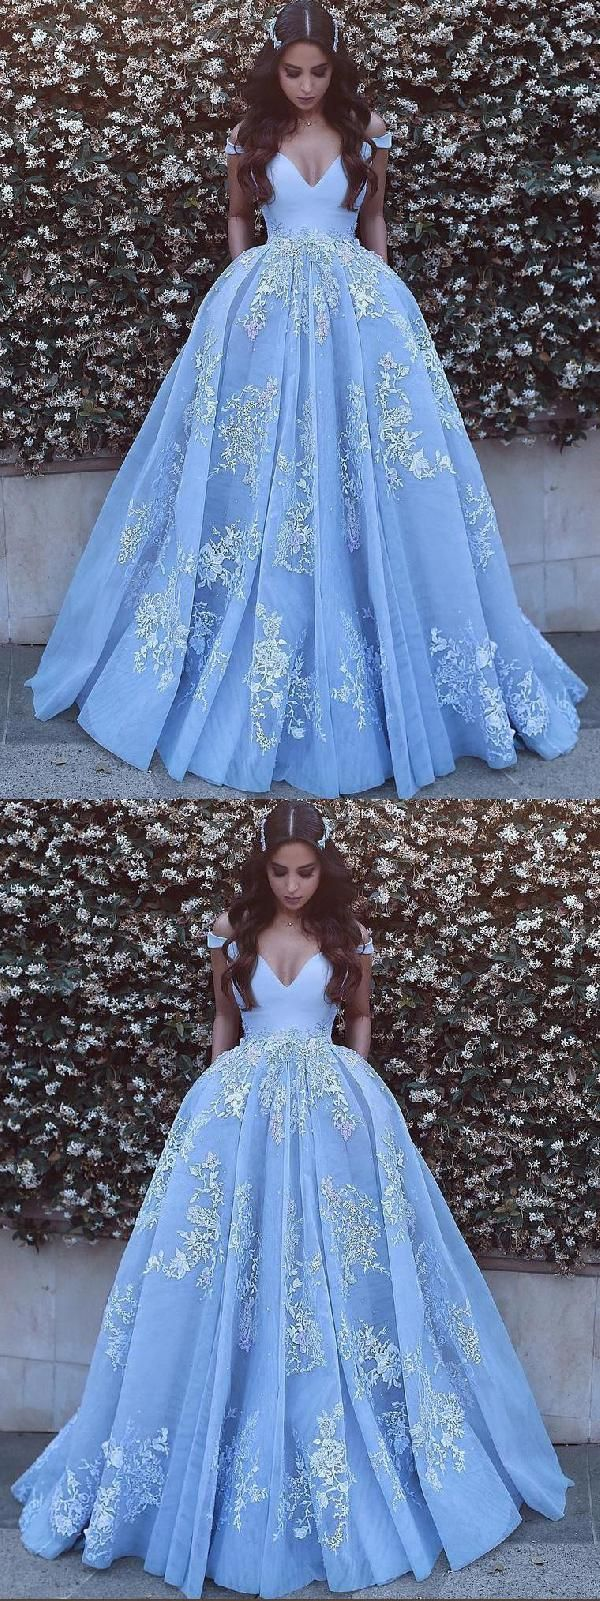 Awesome Prom Dress With Appliques #PromDressWithAppliques, Evening Dress Ball Gown #Even…